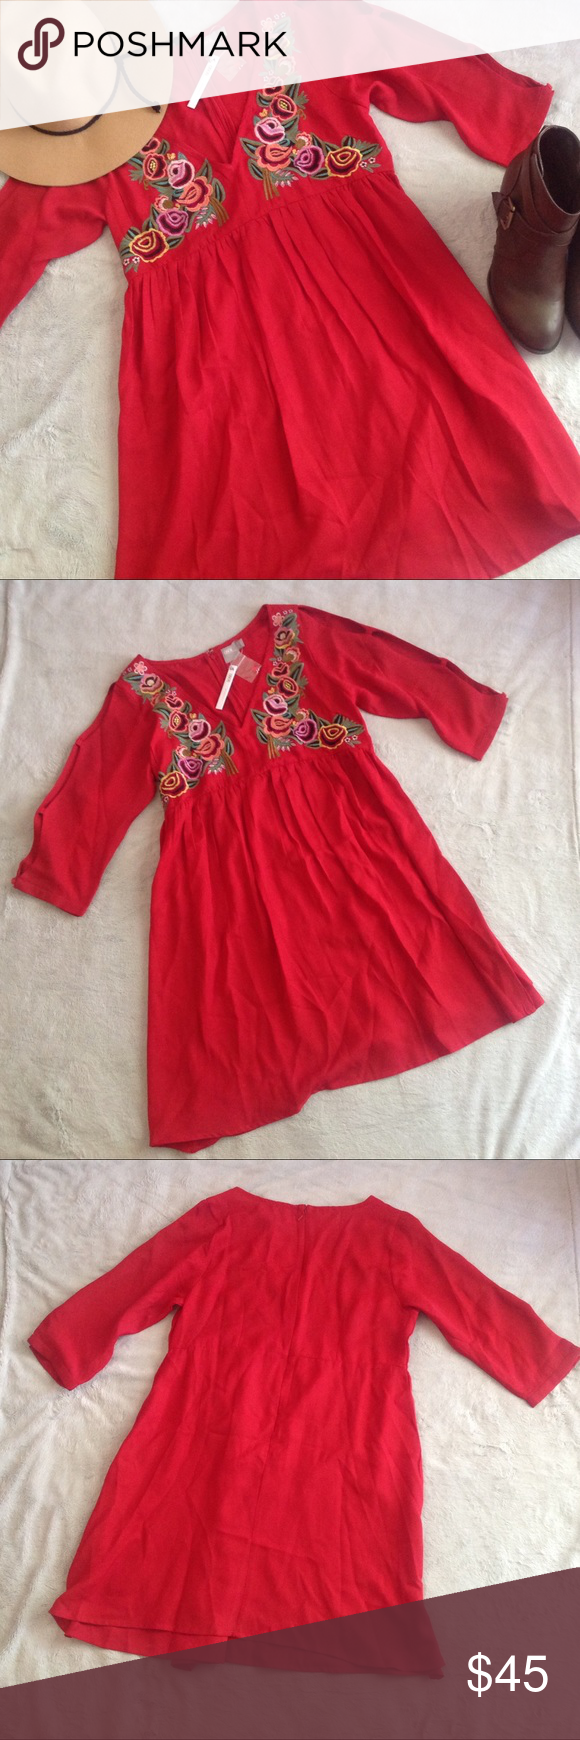 NWT ASOS Embroidered Floral Boho Maternity Dress Brand new, never worn! Gorgeous true red boho style dress by ASOS with floral embroidery along the neckline and bust. Cut-out sleeve detail and empire waist. Zips up the back. Part of the ASOS Maternity line but could be worn pregnant or not, given the loose style. Size 8, see photos for measurements. Lightweight, breathable polyester fabric. (Note: this style is still listed for sale on the ASOS website at full price!) ASOS Dresses